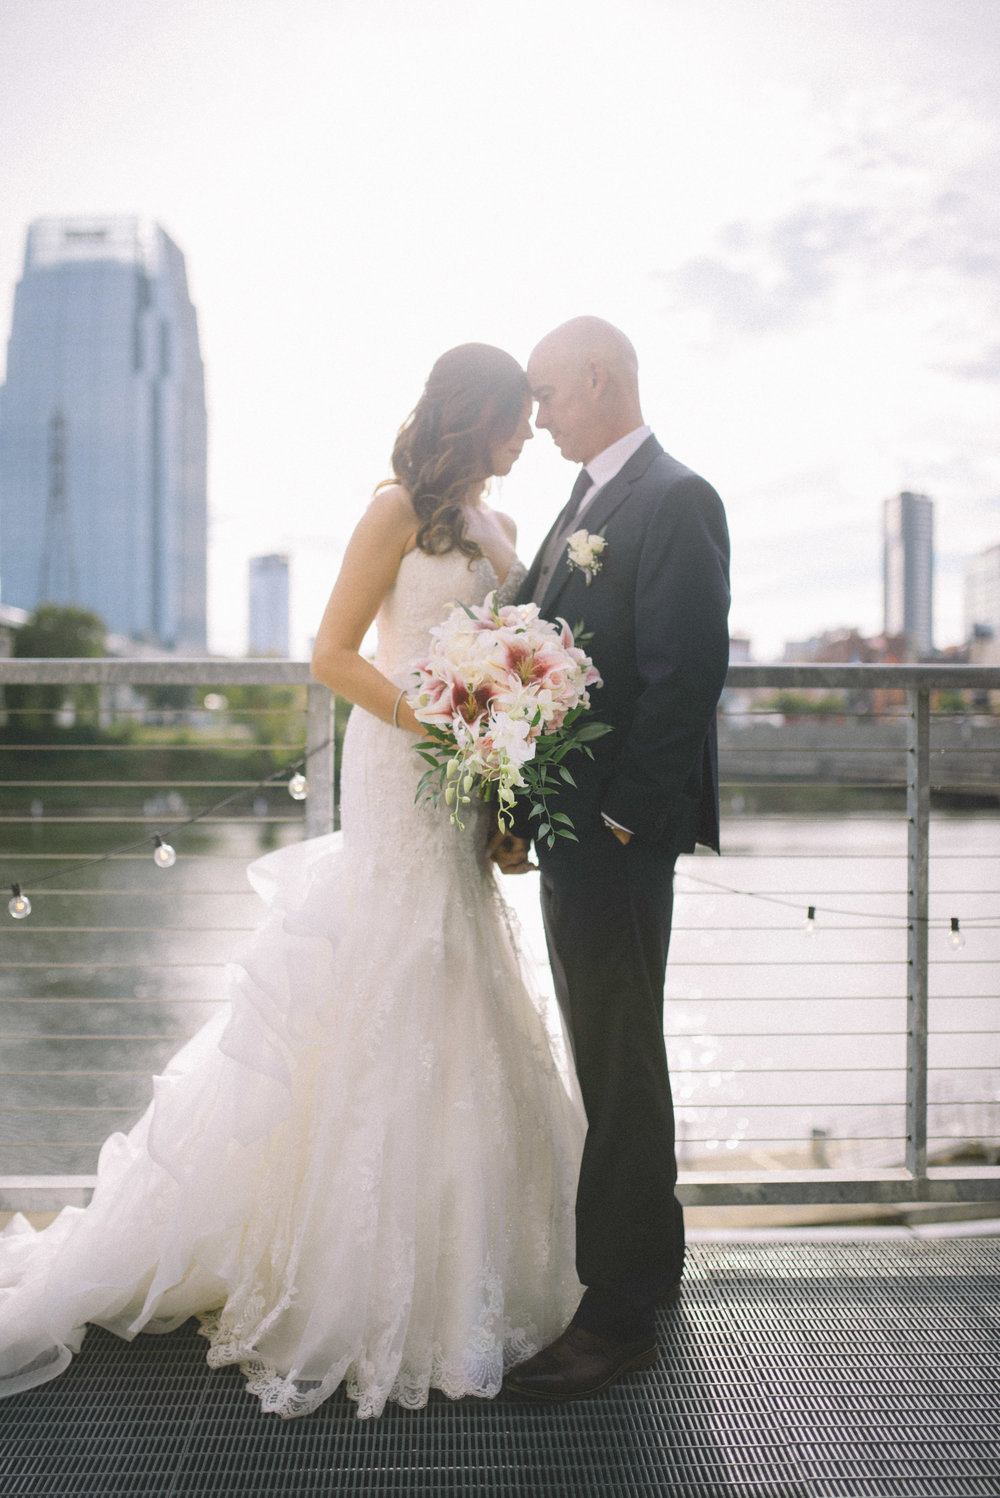 Christina + Matt Wedding - Details Nashville